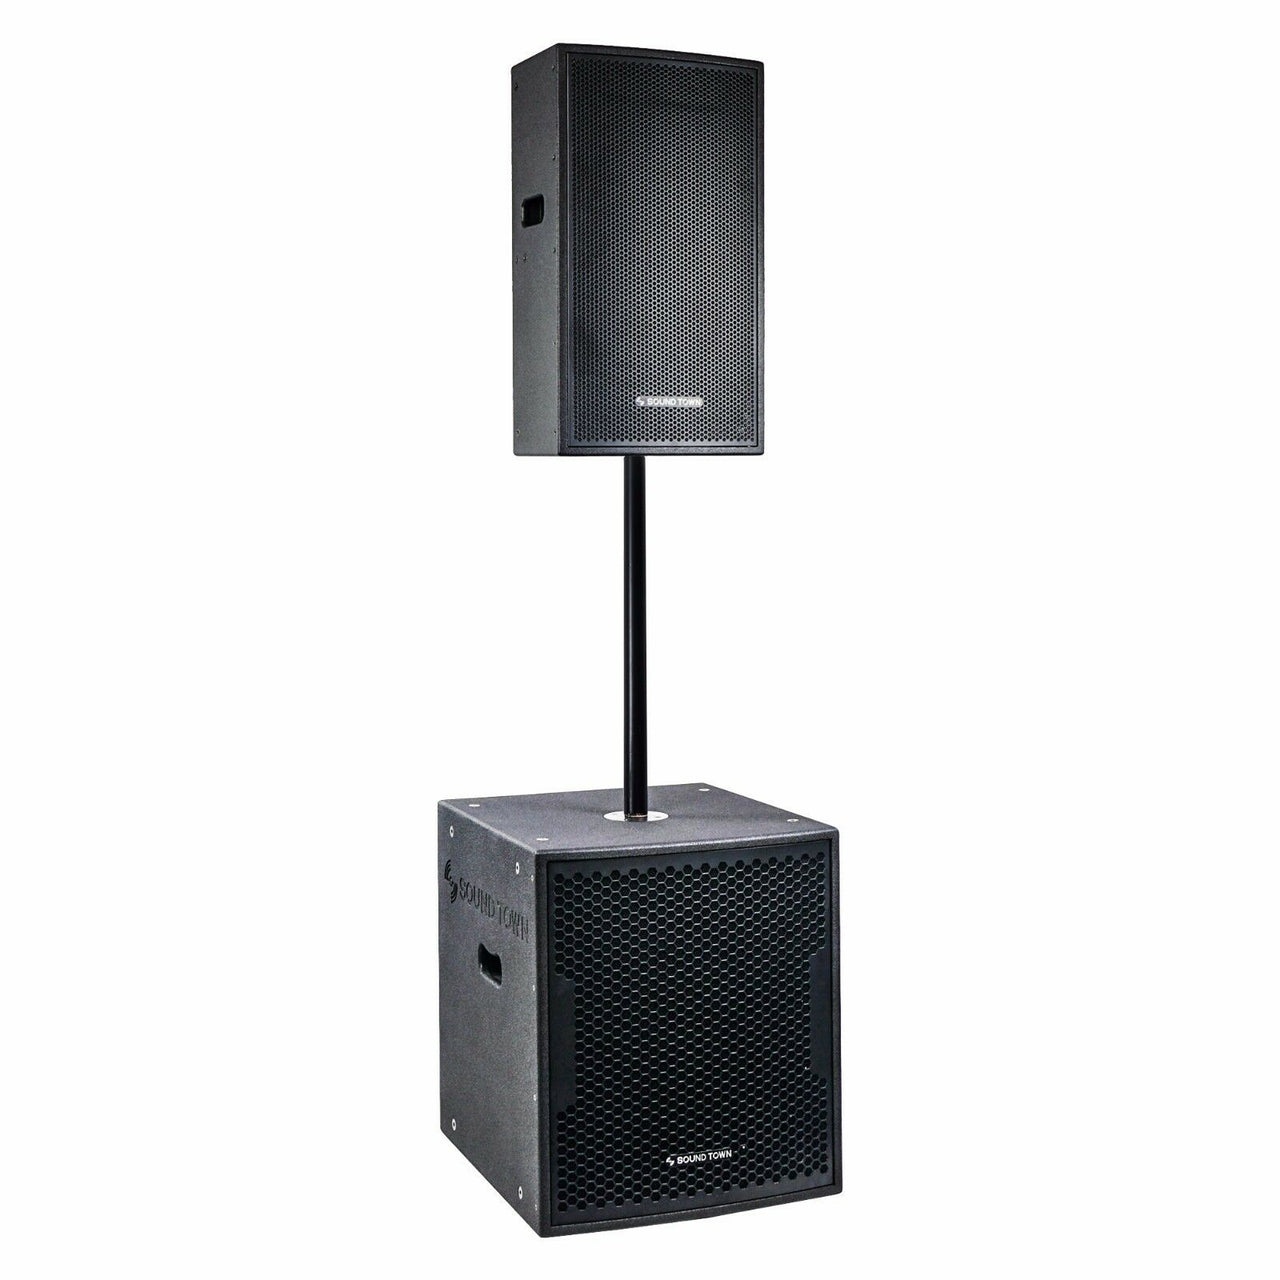 "CARME Series Powered PA Speaker and Subwoofer Combo Set with One 12"" PA Speaker, One 15"" Subwoofer, One Subwoofer Pole, Black (CARME-112BPW15SPW)"